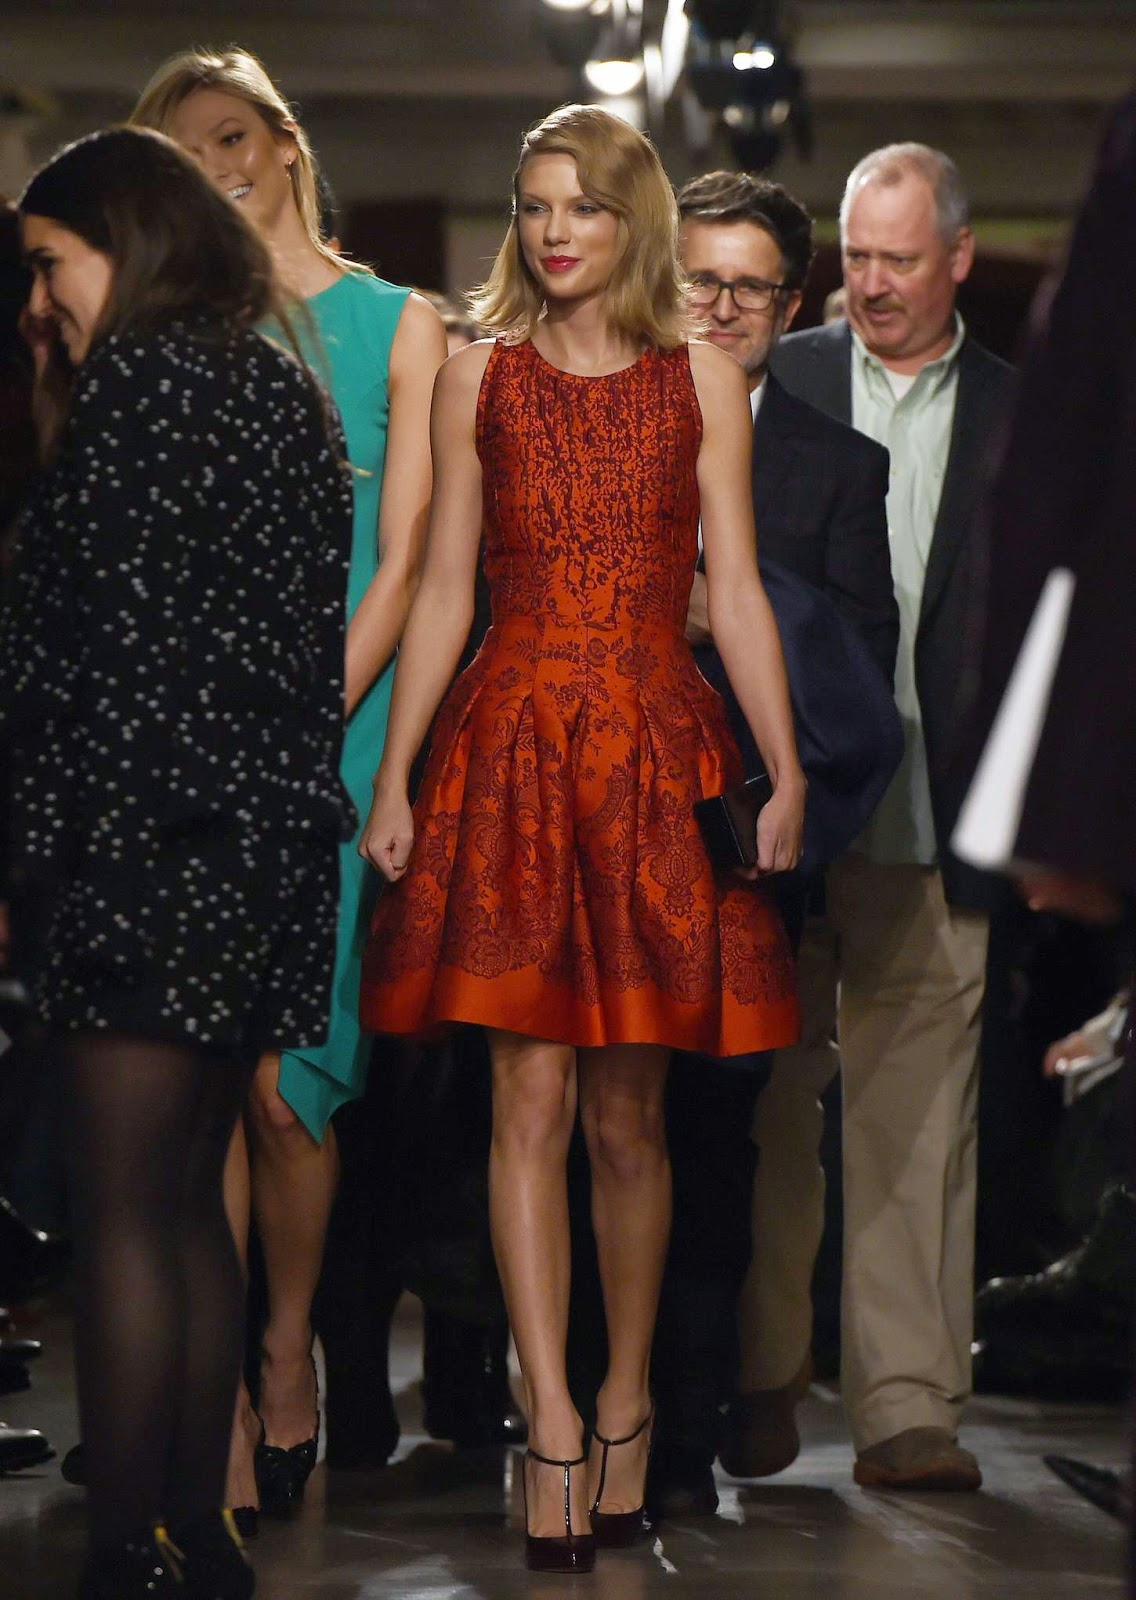 Taylor Swift attends the Oscar de la Renta NYFW Fall/Winter 2015 Show